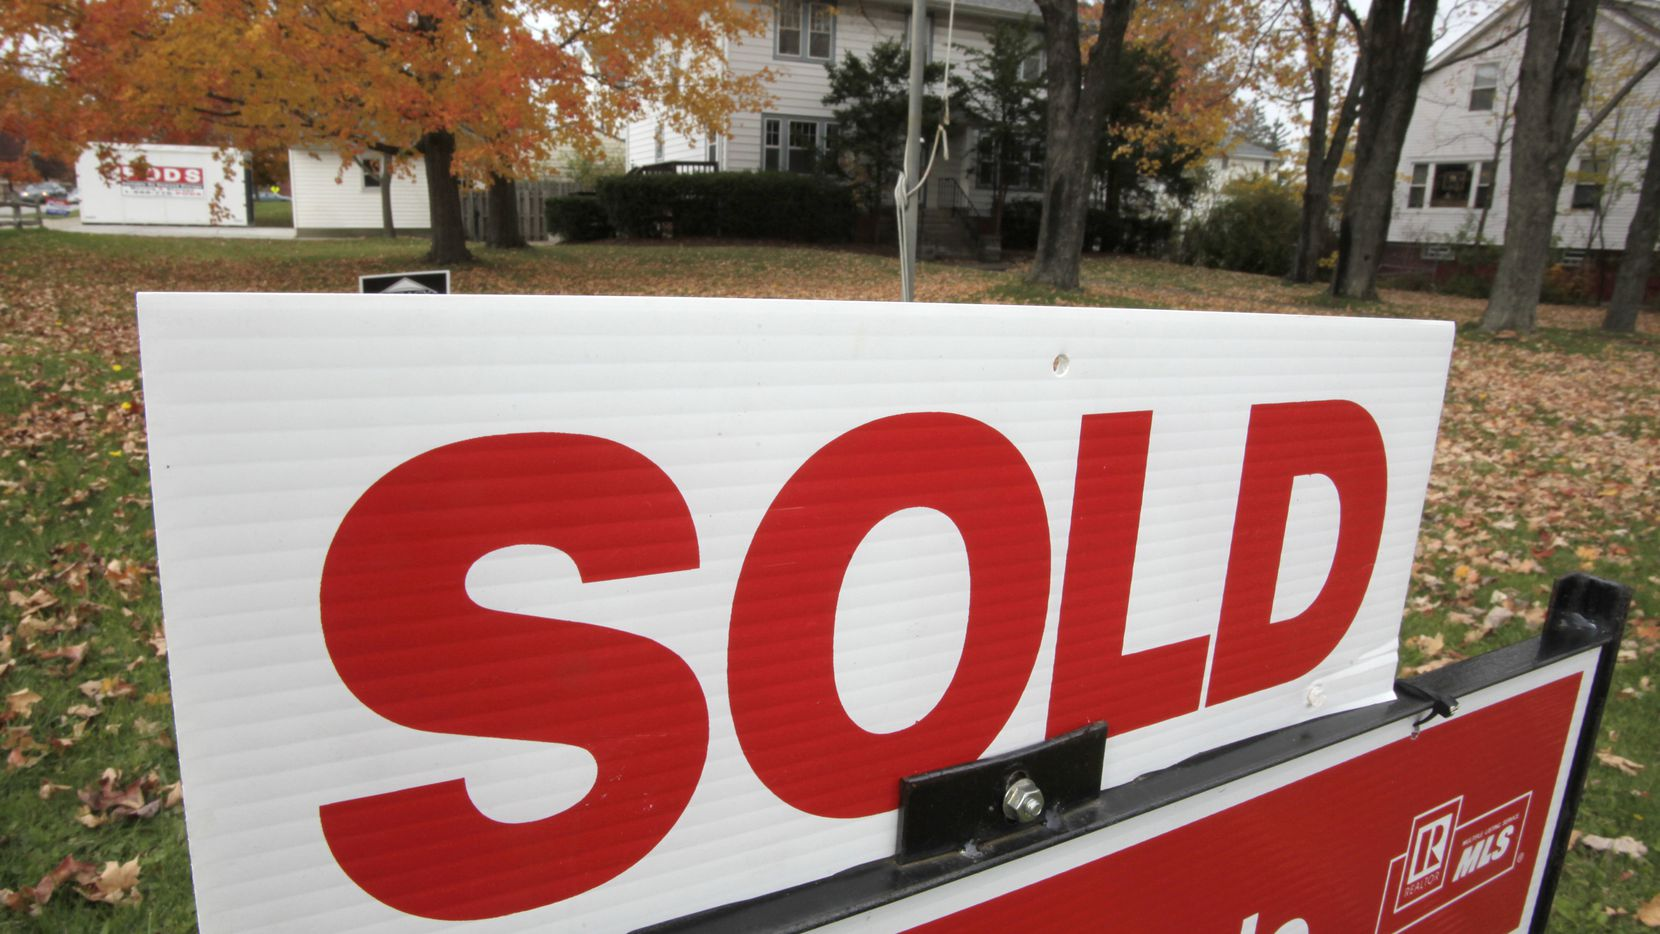 Realtor.com said Midland was the hottest U.S. home market in November.